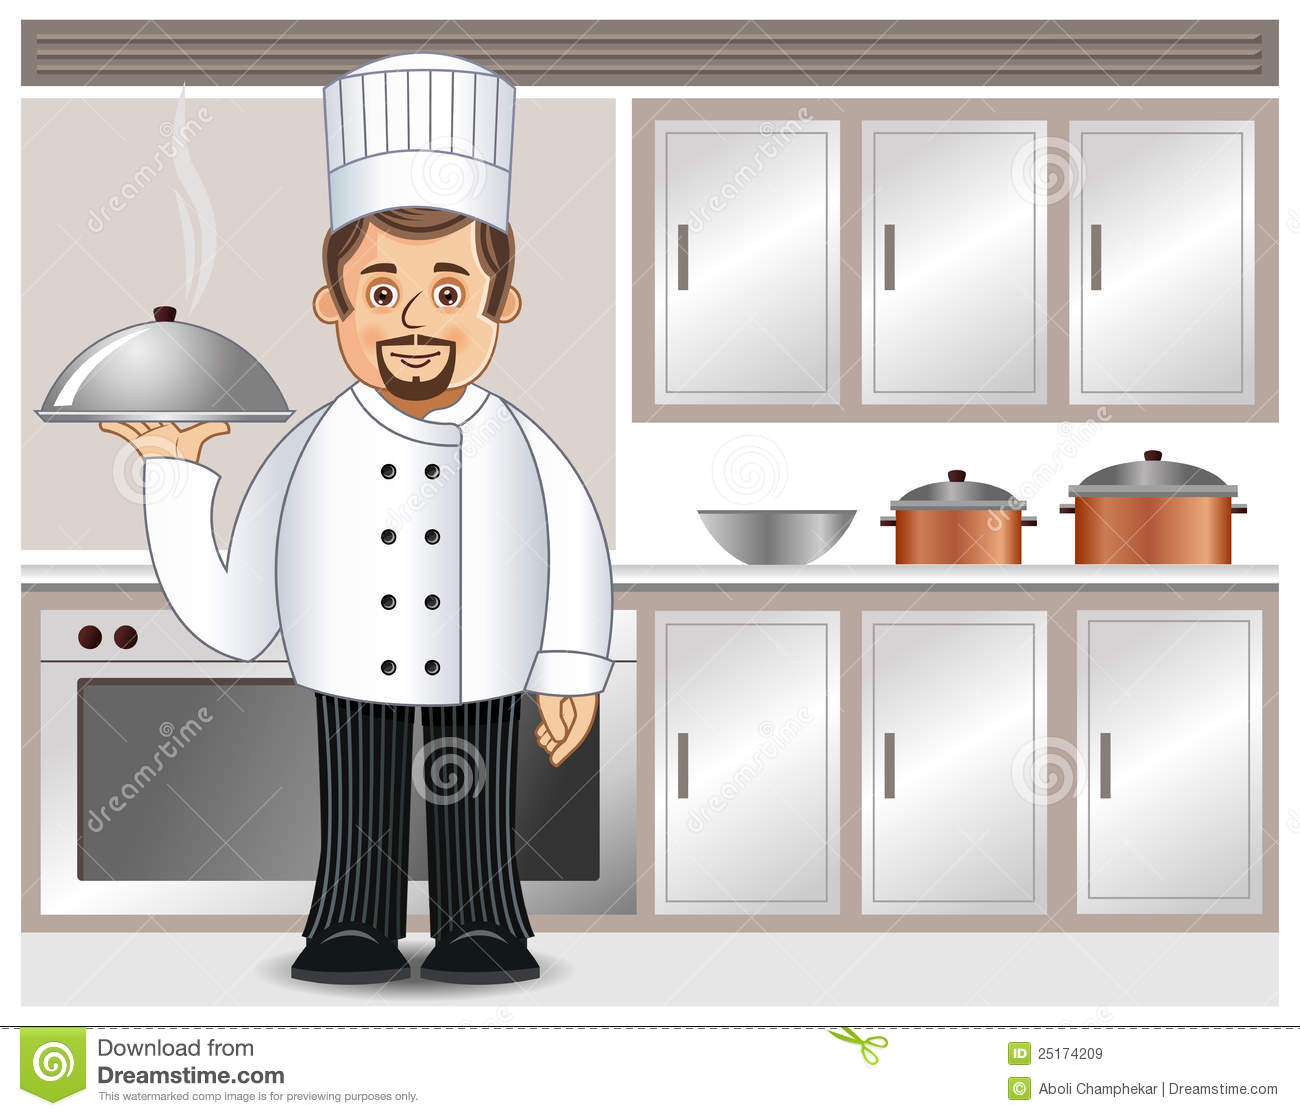 A chef in a kitchen stock vector. Illustration of caterer - 25174209